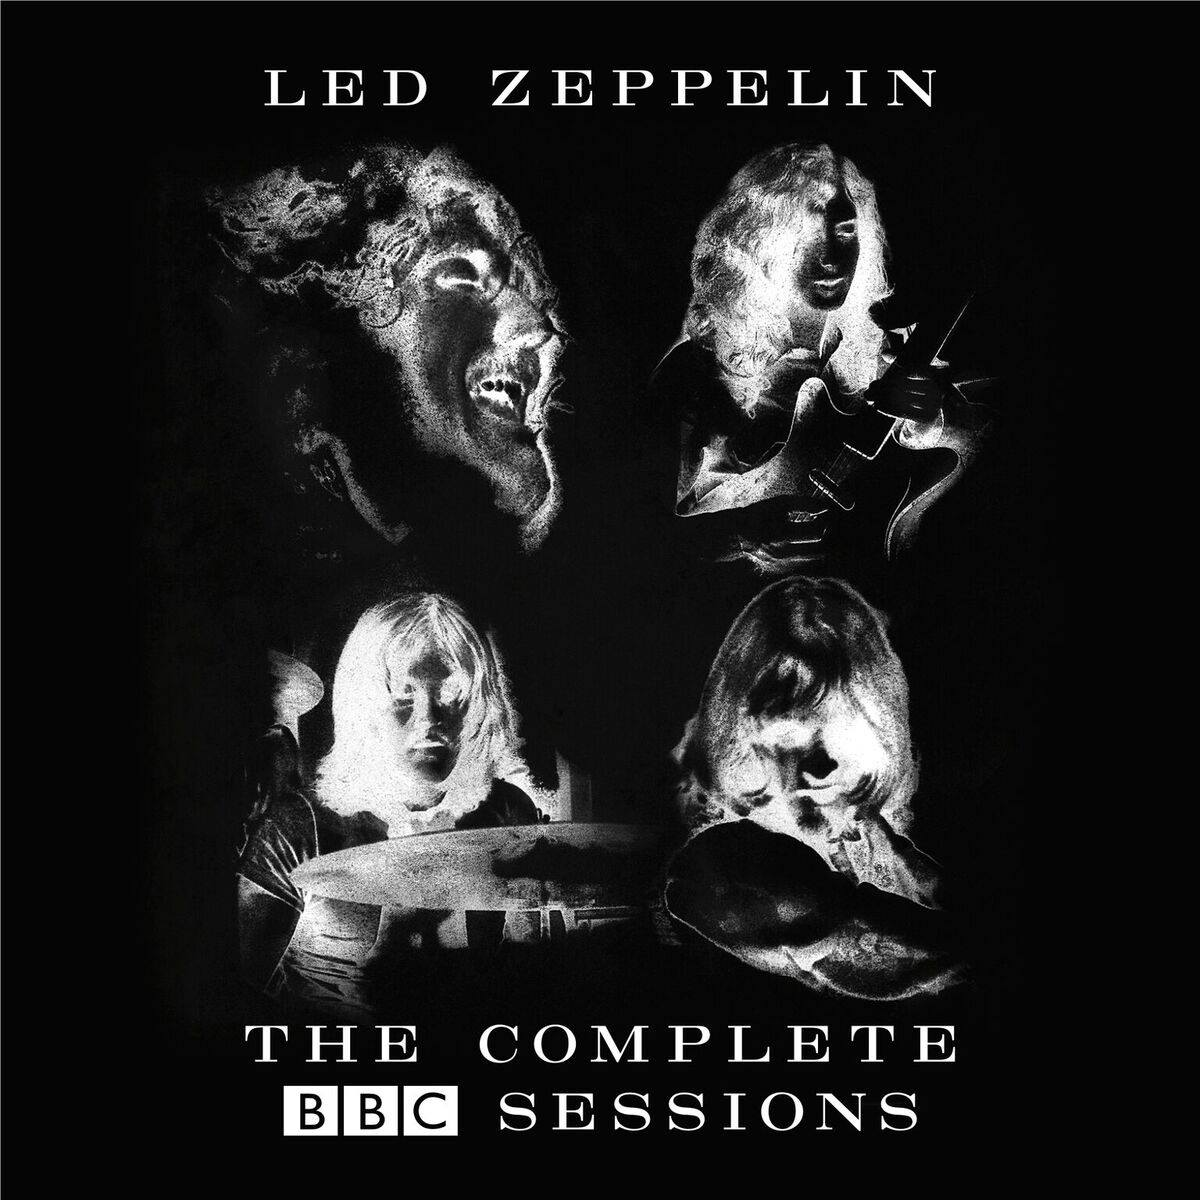 http://www.superdeluxeedition.com/news/led-zeppelin-the-complete-bbc-sessions-super-deluxe-edition-box-set/